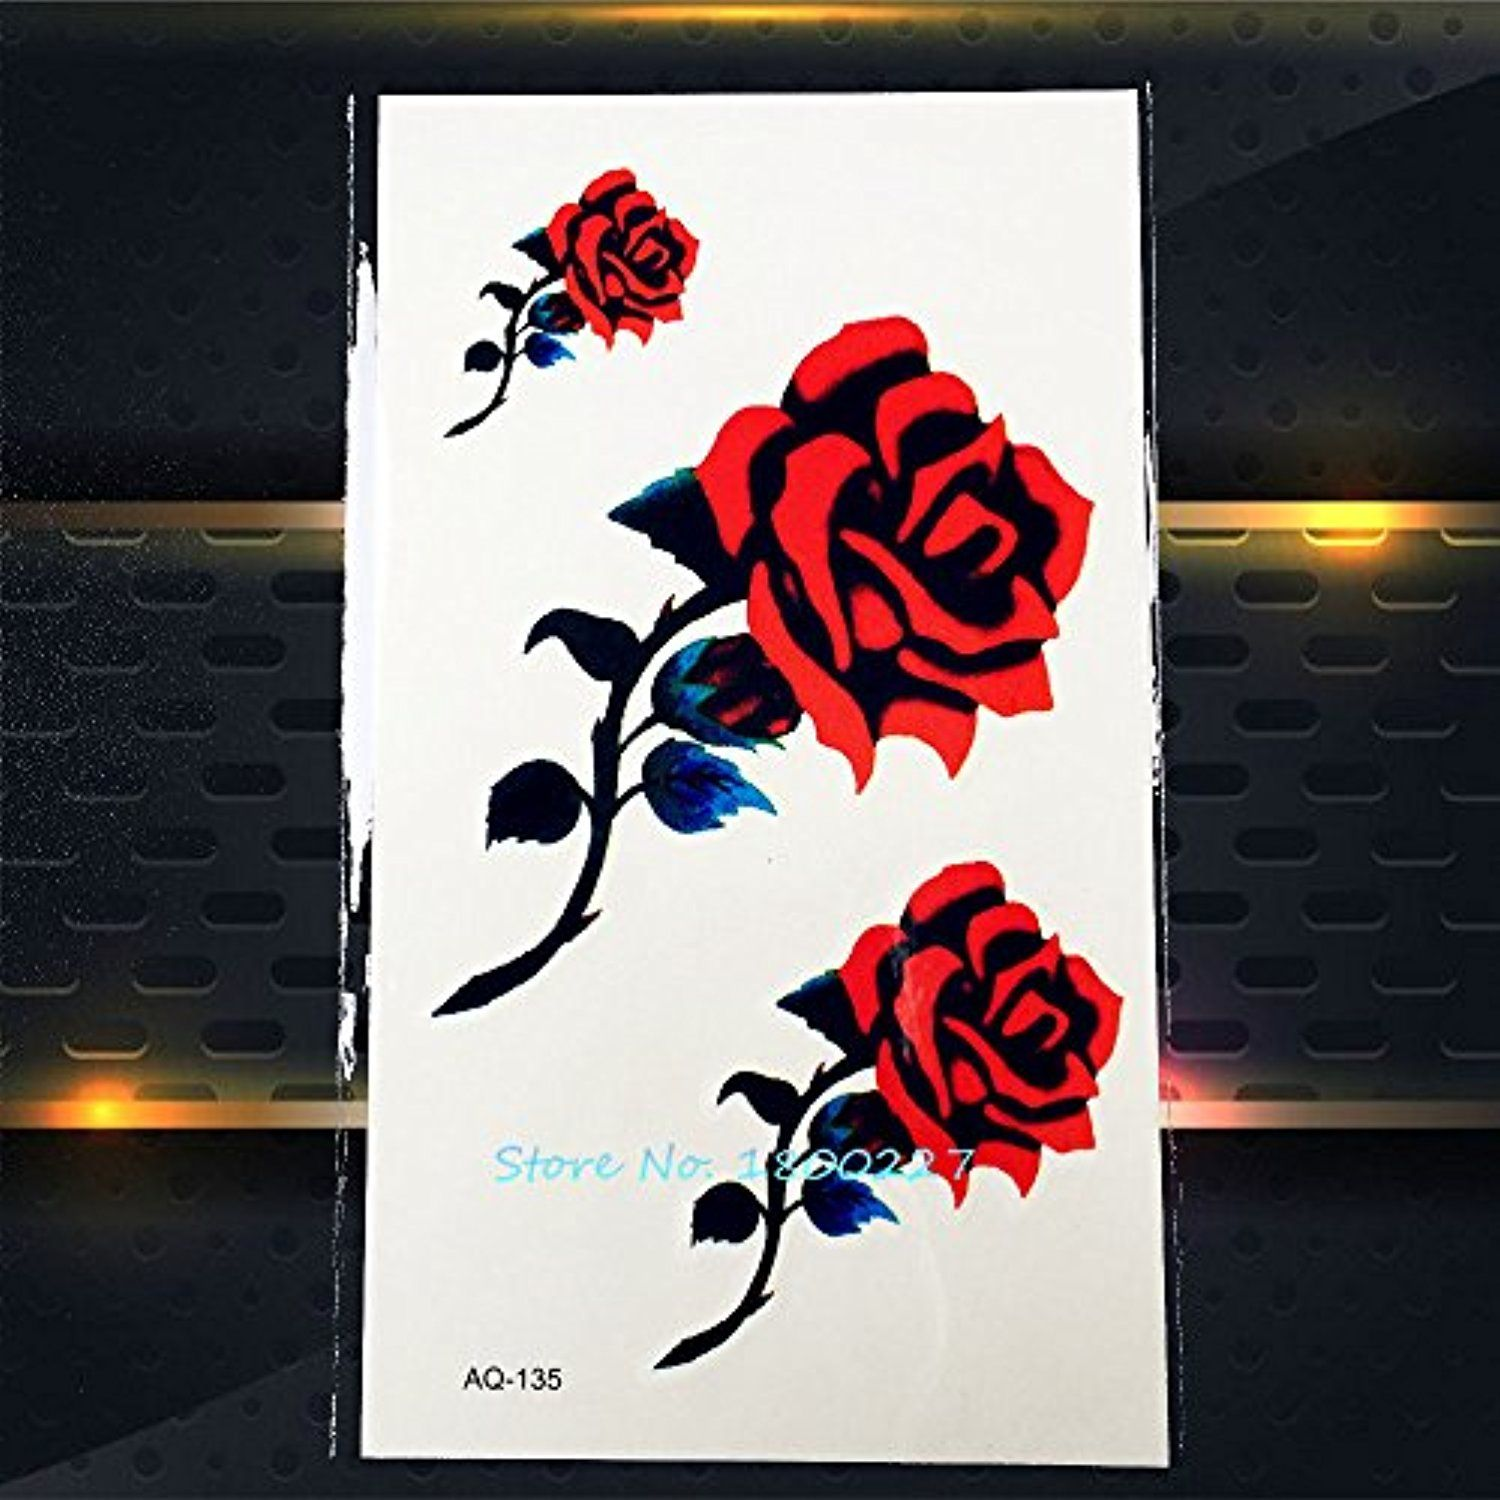 fba434ab047e7 GSN 1PC Sexy Women Makeup 3D Tattoo Stickers PAQ-135 Red Roses Temporary  Tattoo Paste Party Pattern Fake Waterproof Tatoo 2016 >>> Read more at the  image ...